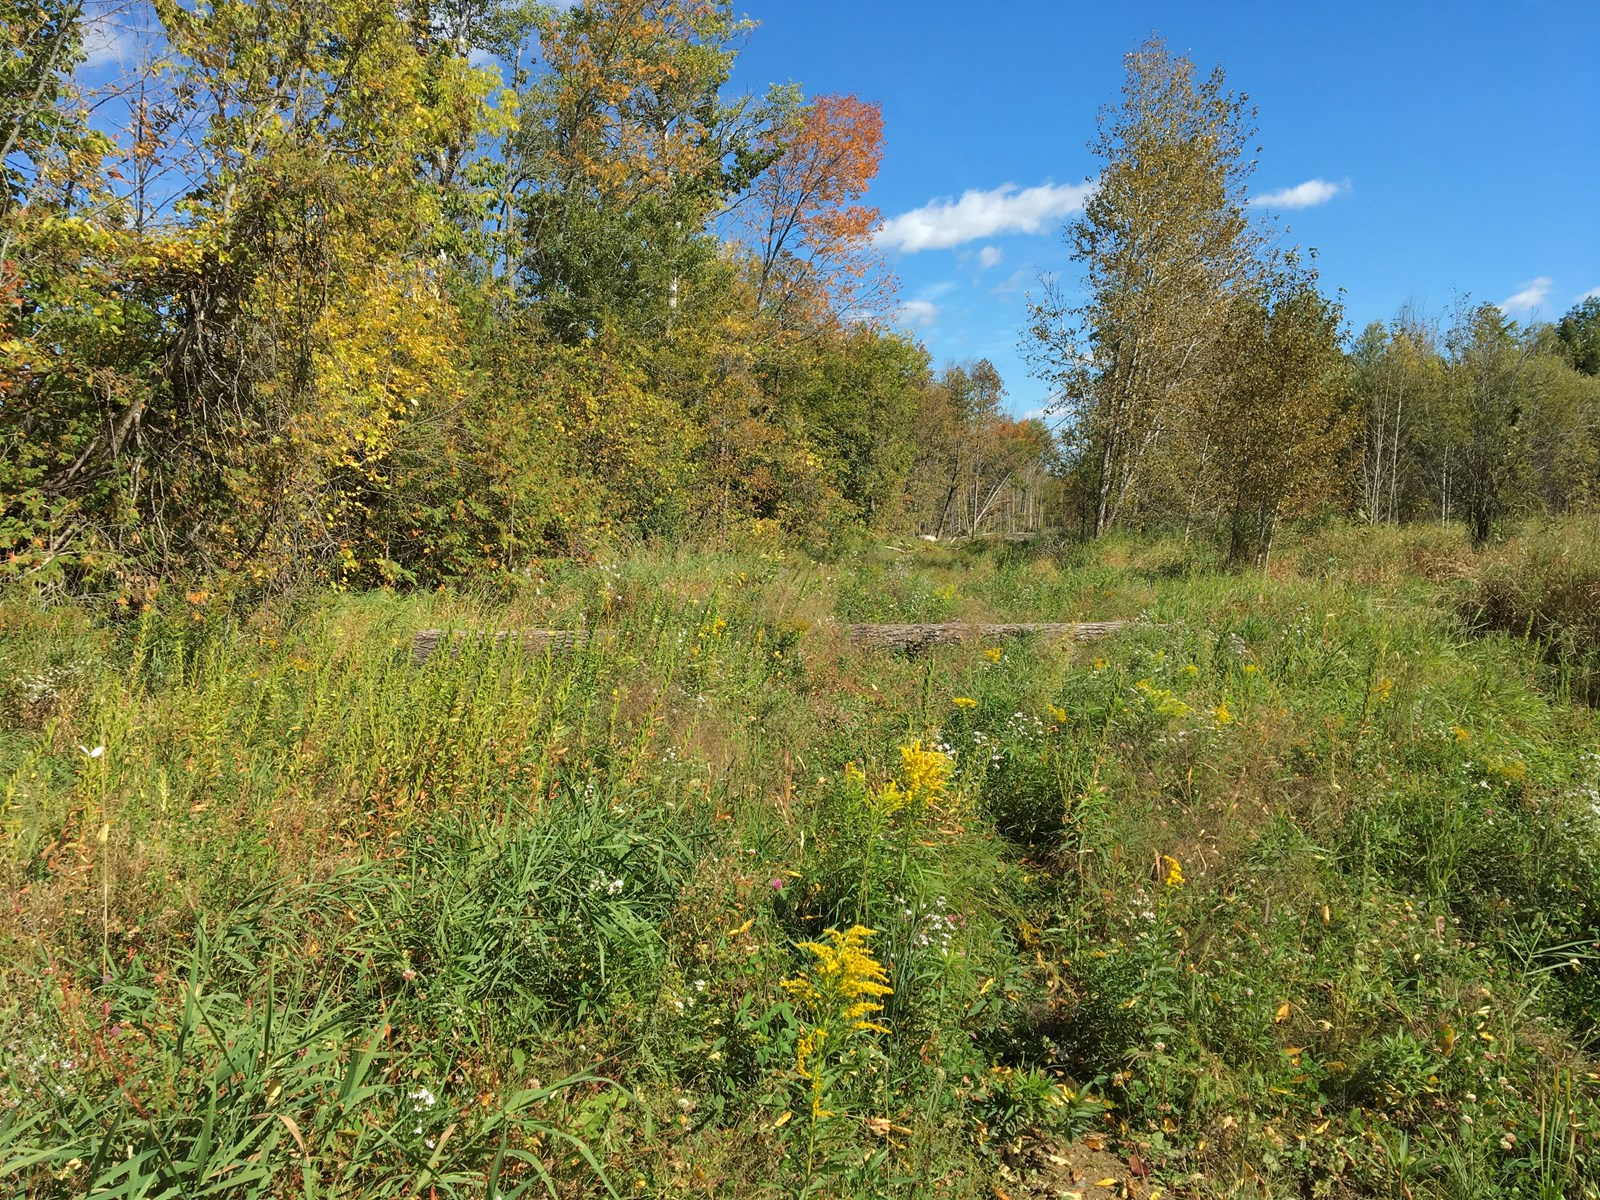 Land lot for sale in Corinth, Maine